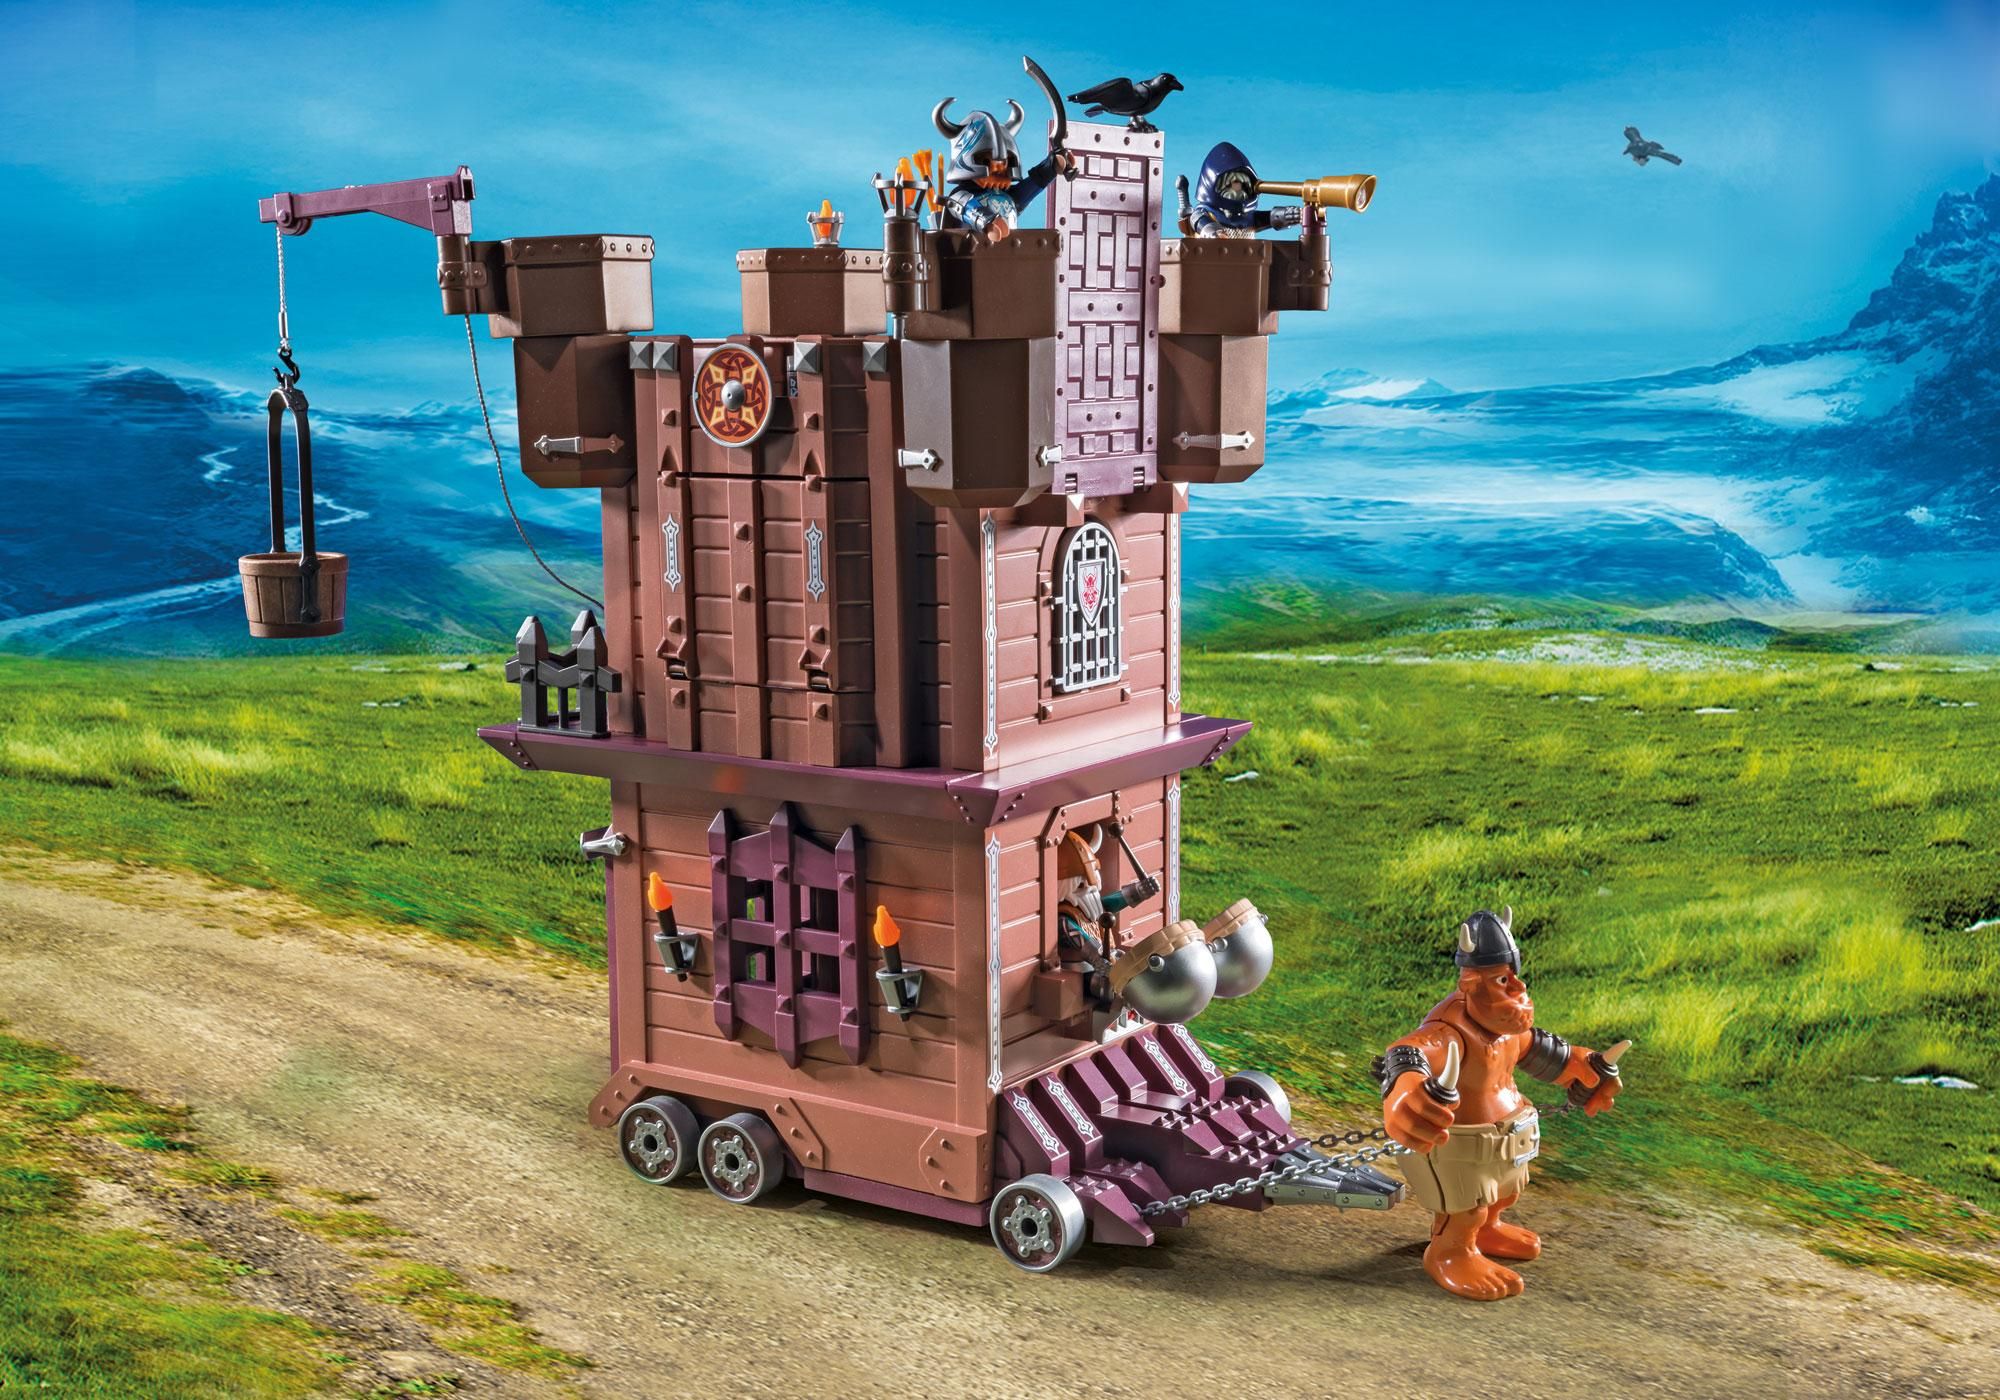 http://media.playmobil.com/i/playmobil/9340_product_extra3/Mobile Zwergenfestung